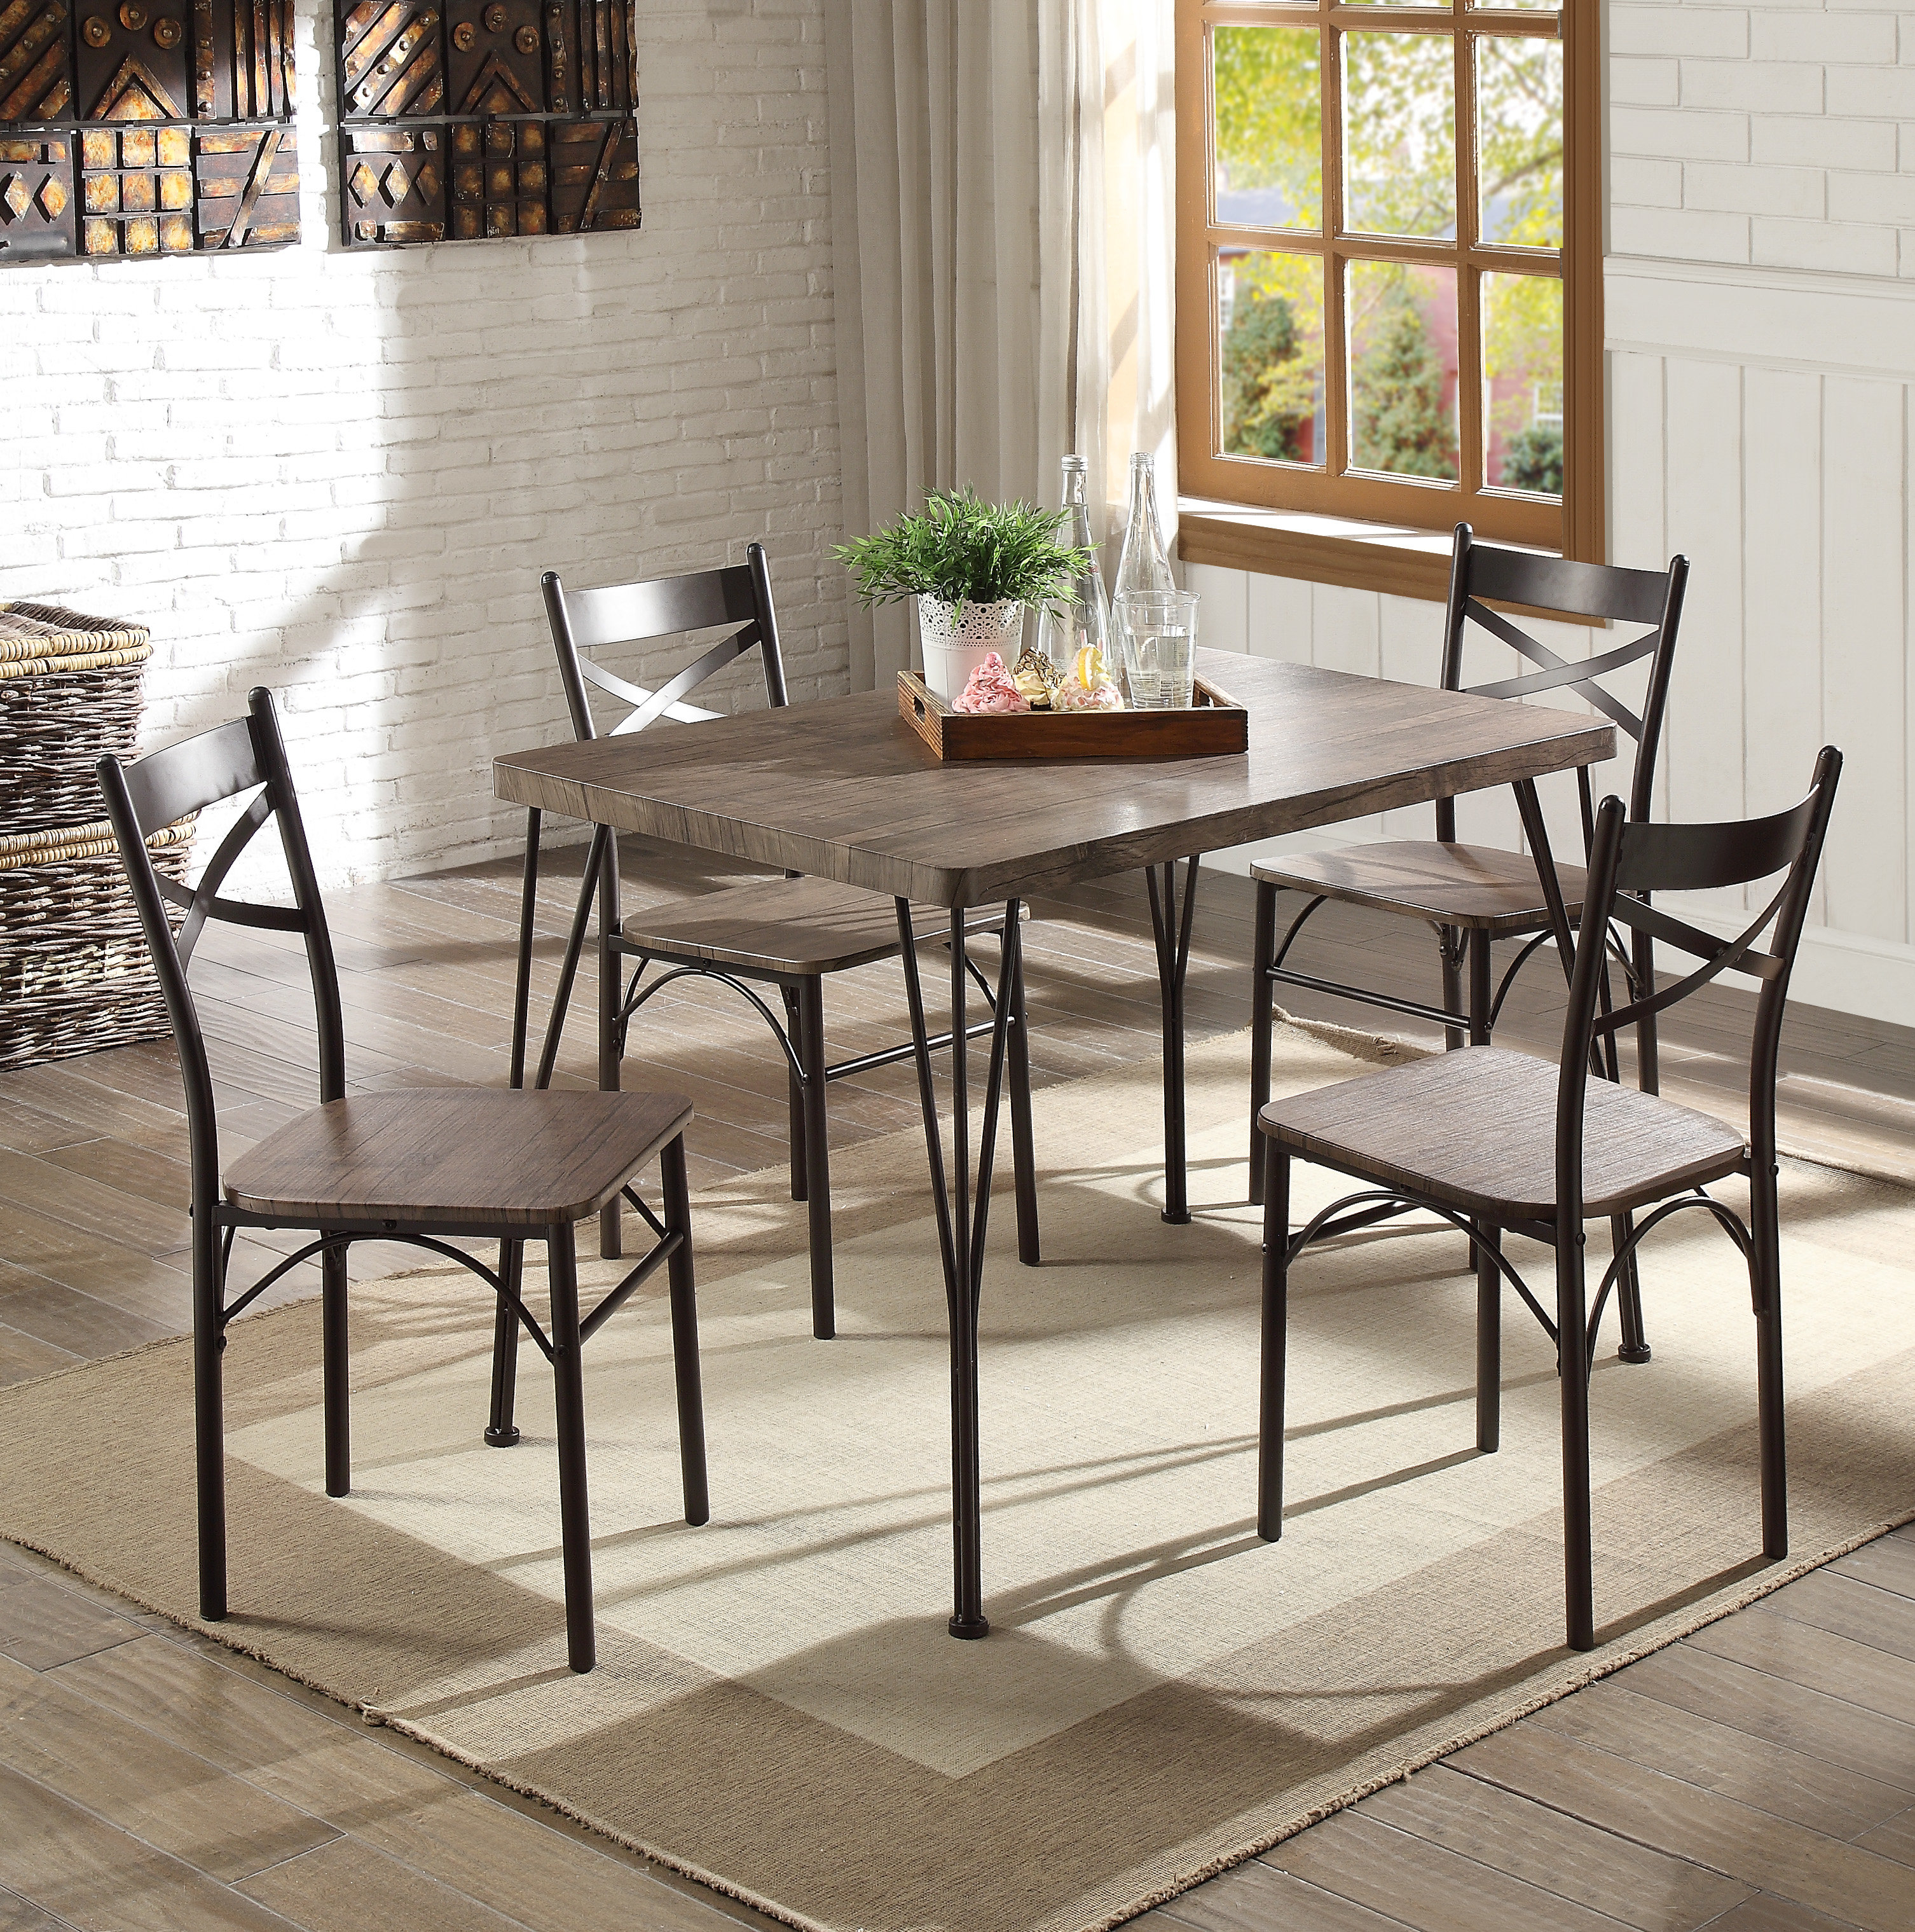 Inspiration about Rossi 5 Piece Dining Sets Inside Fashionable Middleport 5 Piece Dining Set (#2 of 20)